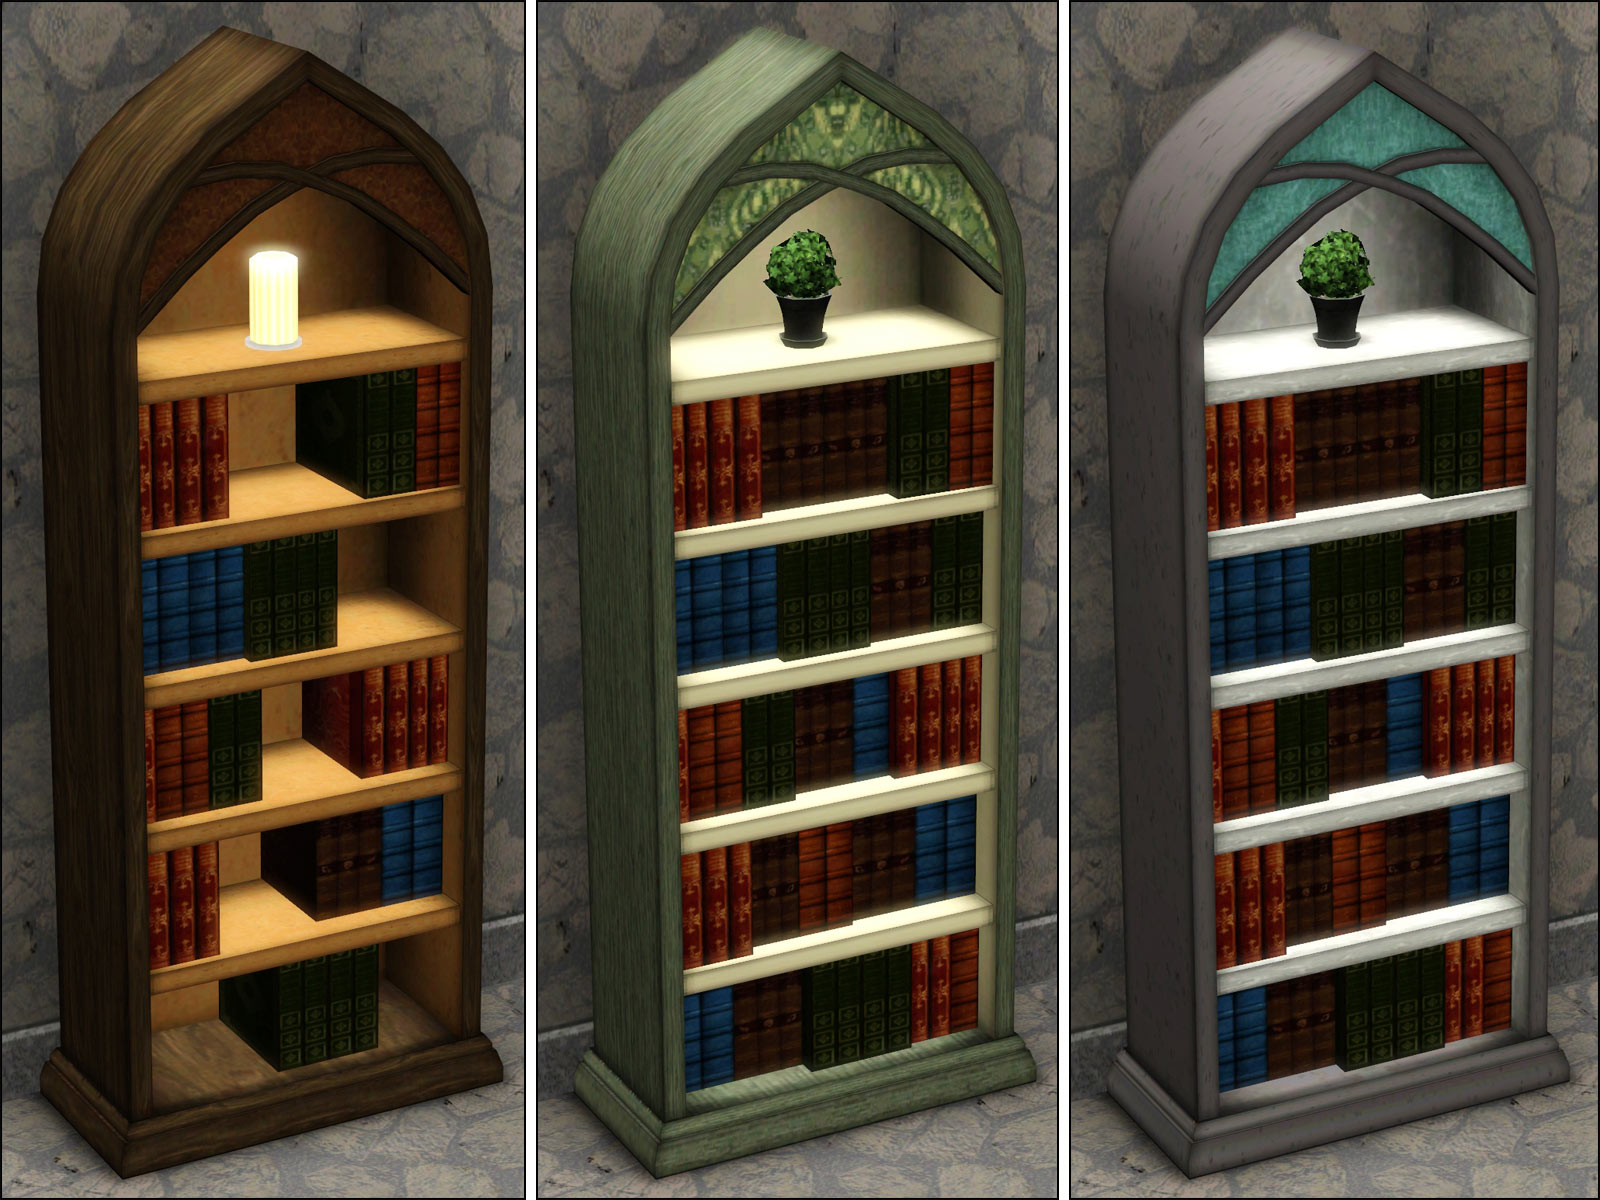 Very Impressive portraiture of Parsimonious The Sims 3: Furniture with #9B6F30 color and 1600x1200 pixels